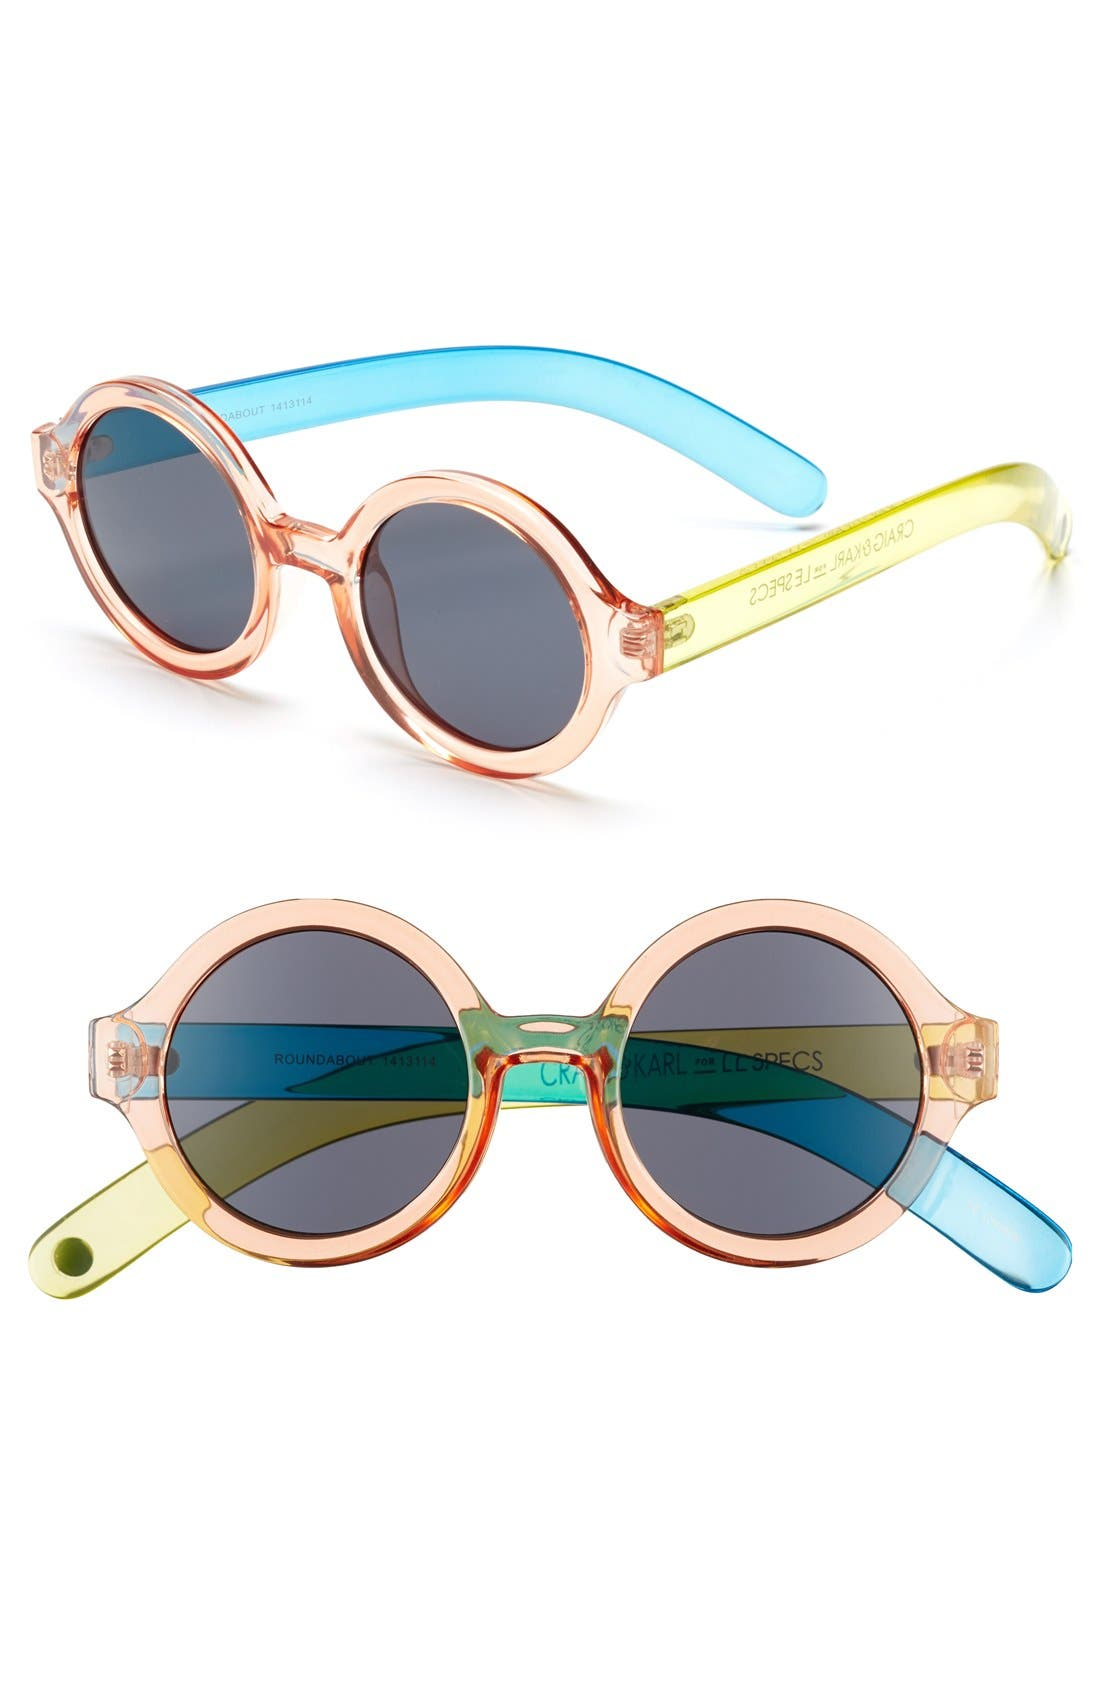 Craig and Karl x Le Specs 'Roundabout' 45mm Sunglasses,                         Main,                         color, Clear Peach/ Blue/ Yellow